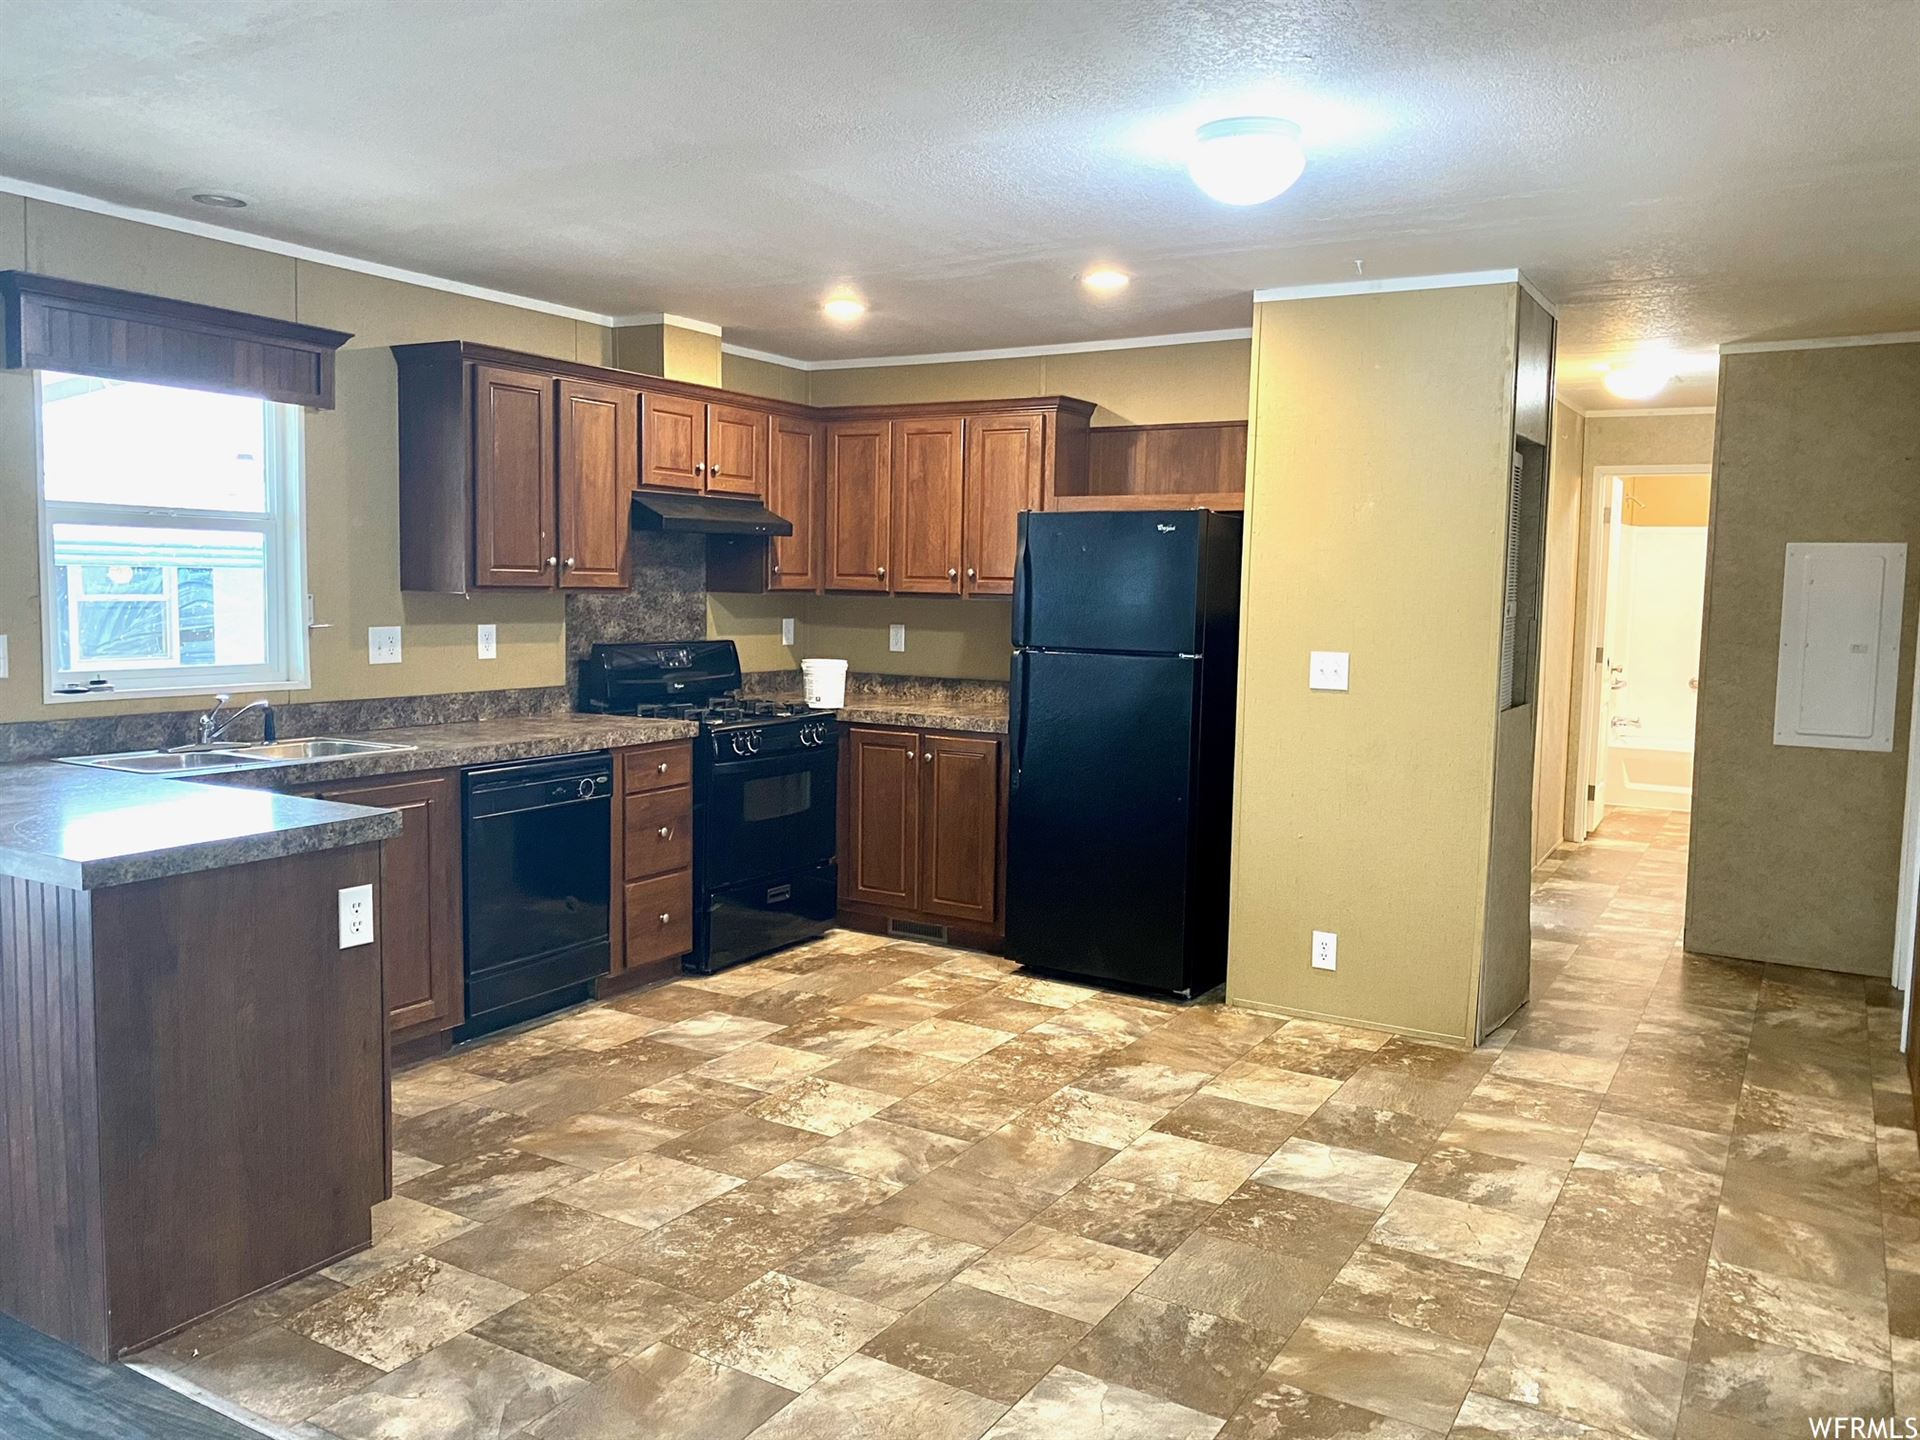 Photo of 1153 W BARBERRY LN #126, Taylorsville, UT 84123 (MLS # 1723968)